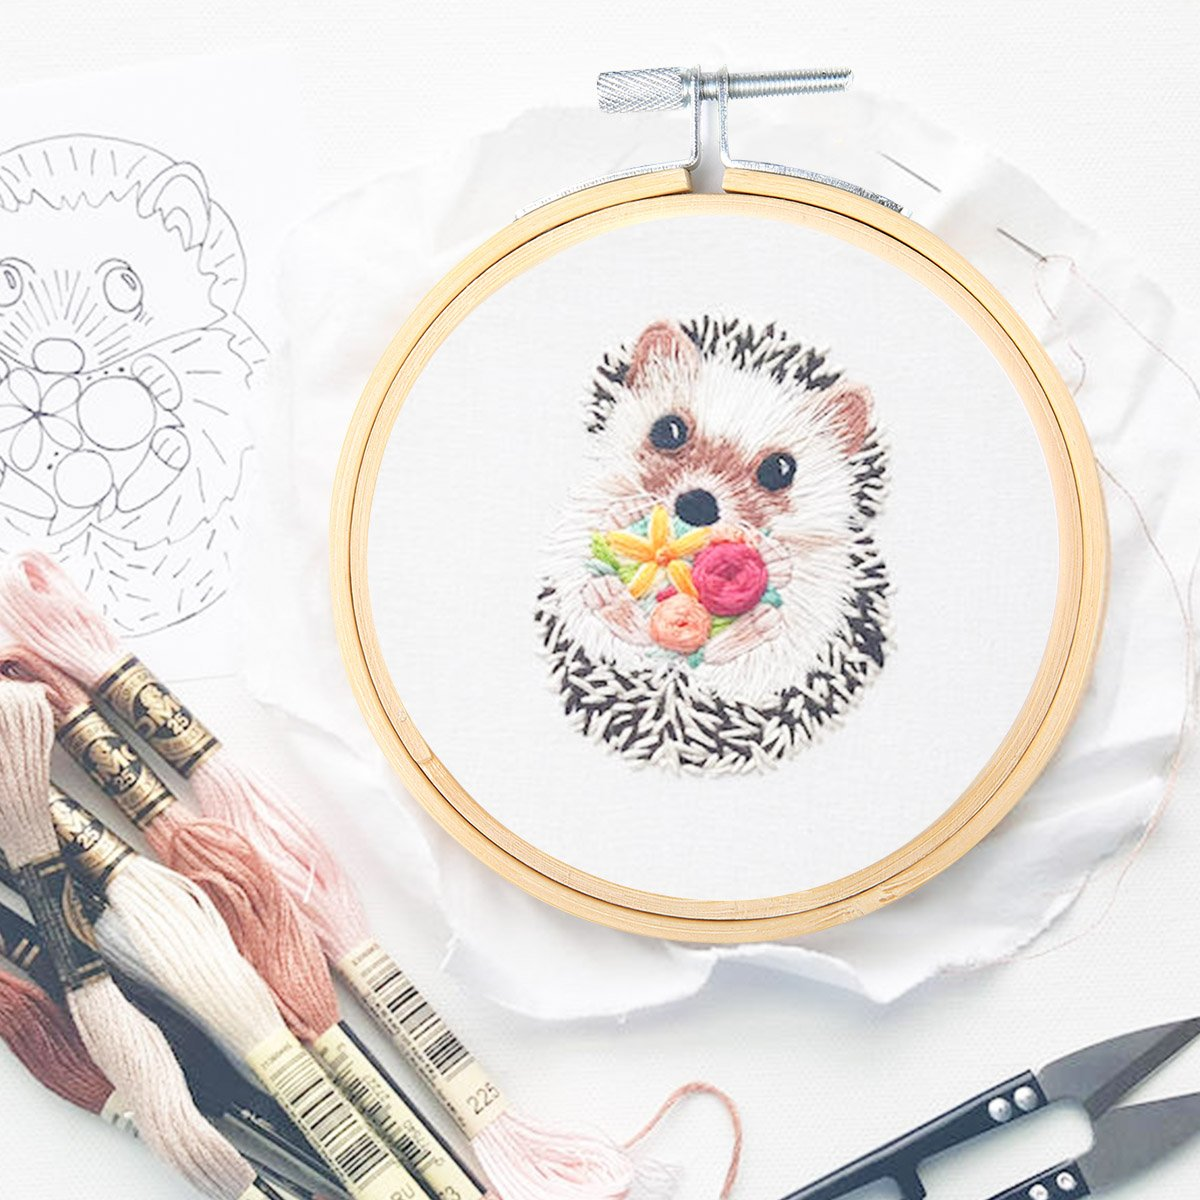 Crafts /& Sewing(5pc//5size with Tools) KINGSO Cross Stitch Hoop Embroidery Hoop Pieces Embroidery Circle Set Hoops Ring Wooden Round Adjustable Bamboo Hoops Bulk Crosses for Arts